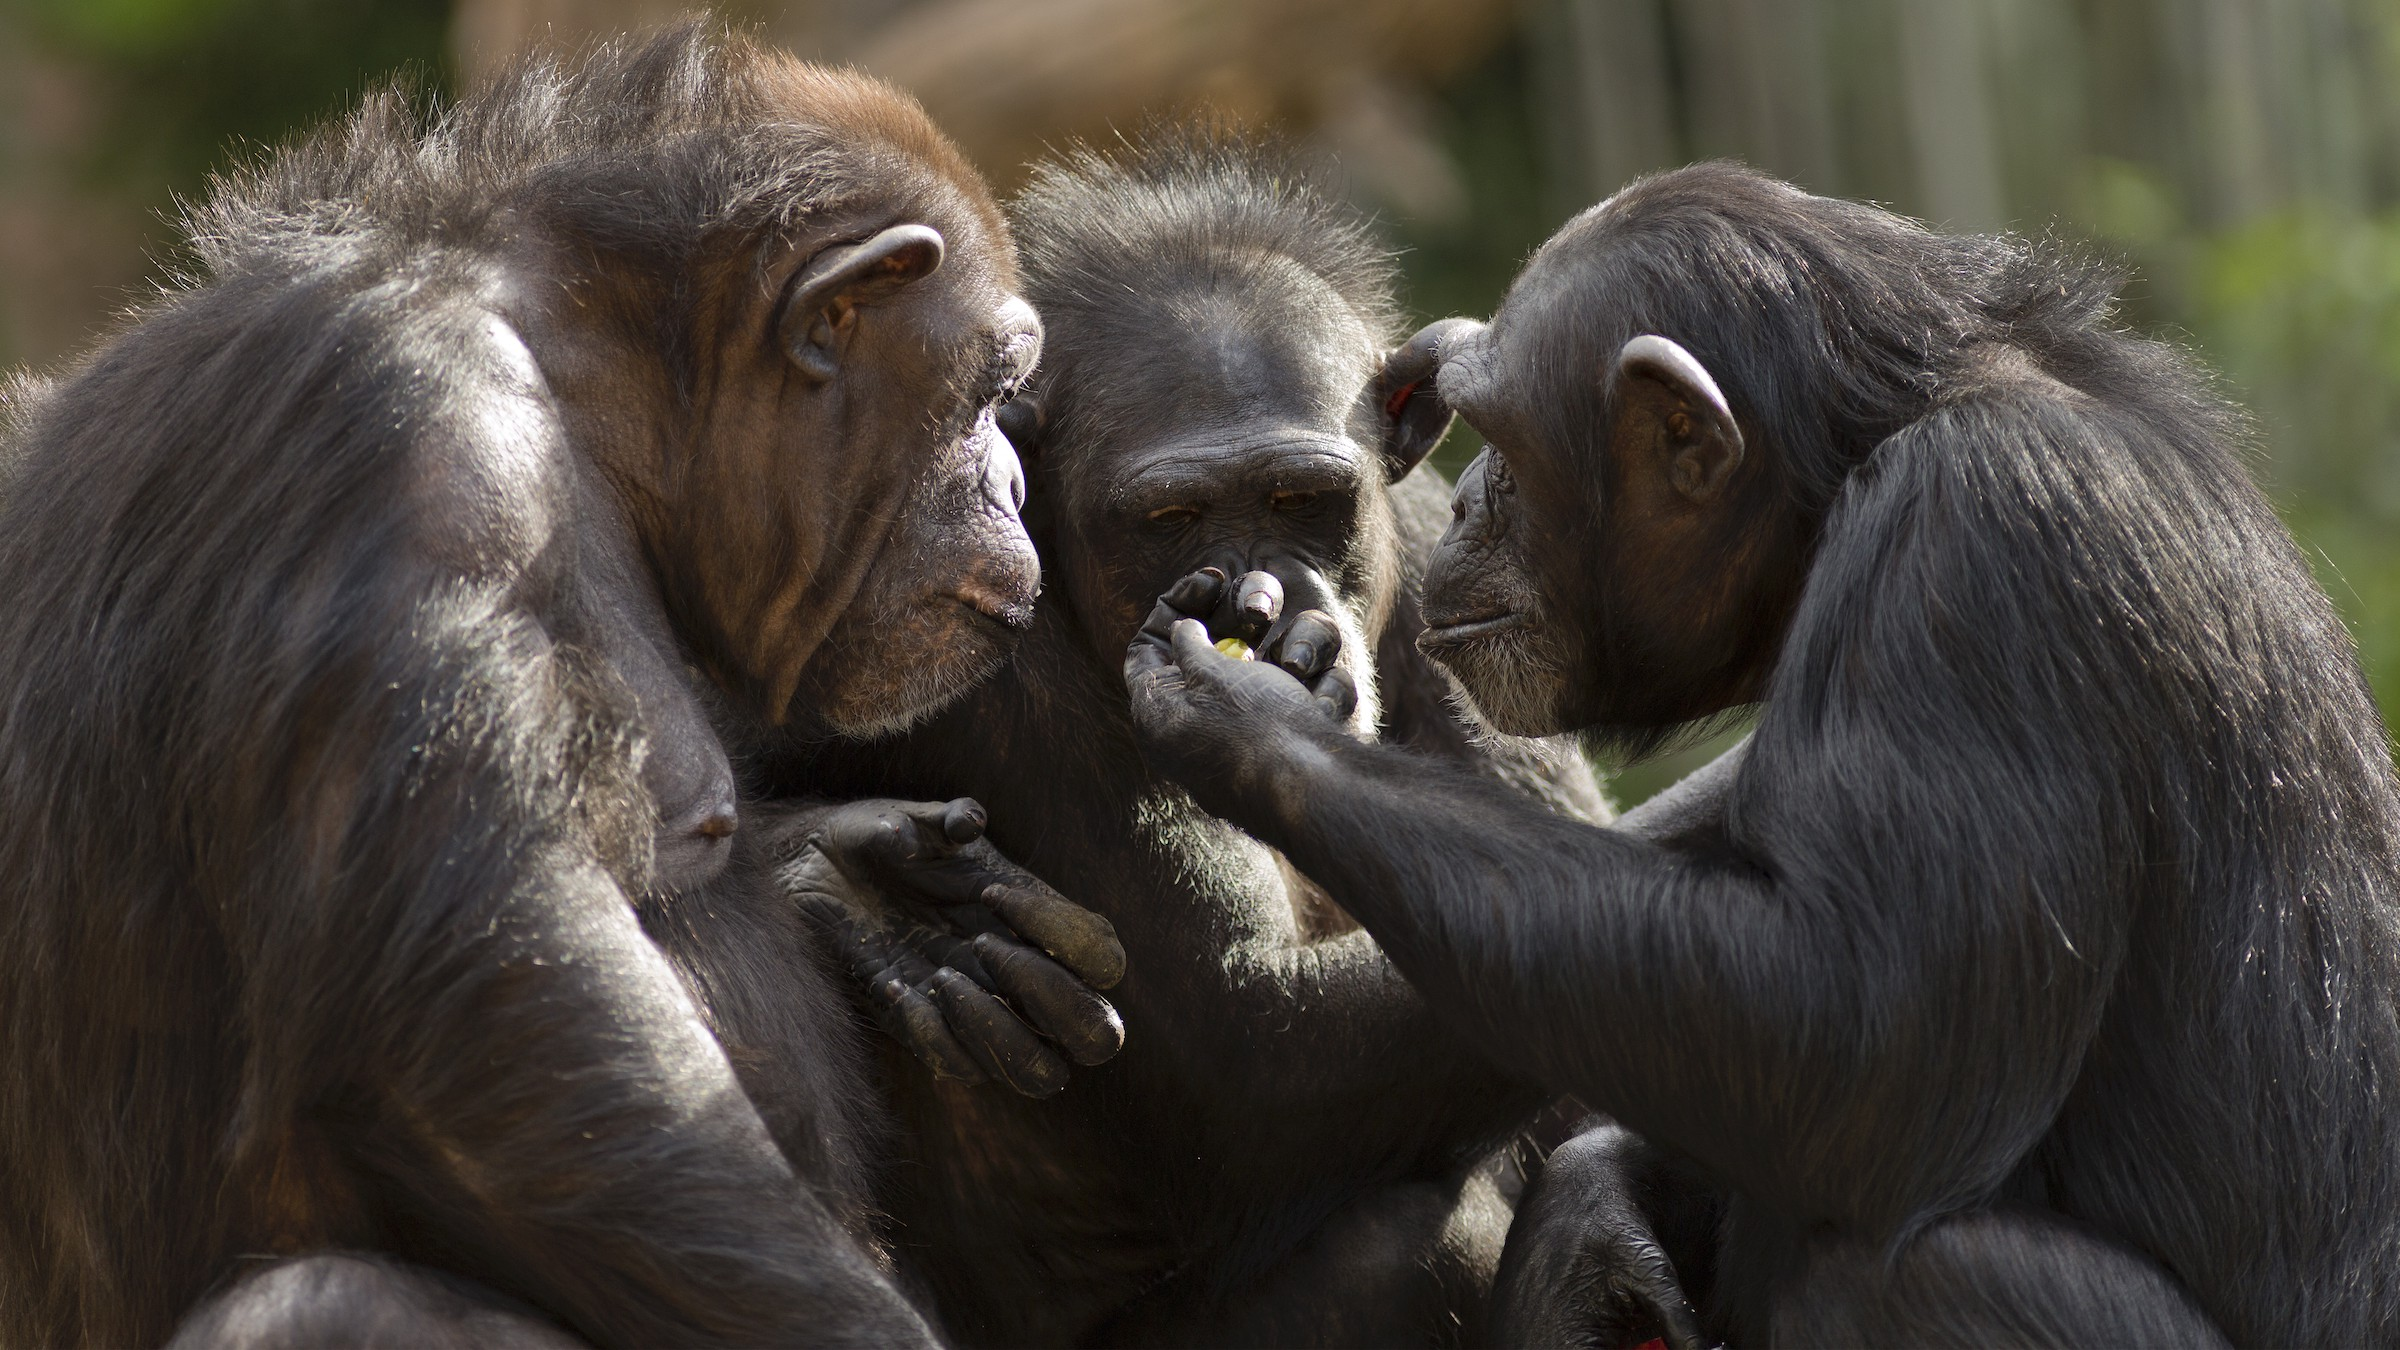 A chimpanzee holds up a piece of fruit for two other chimps to examine.